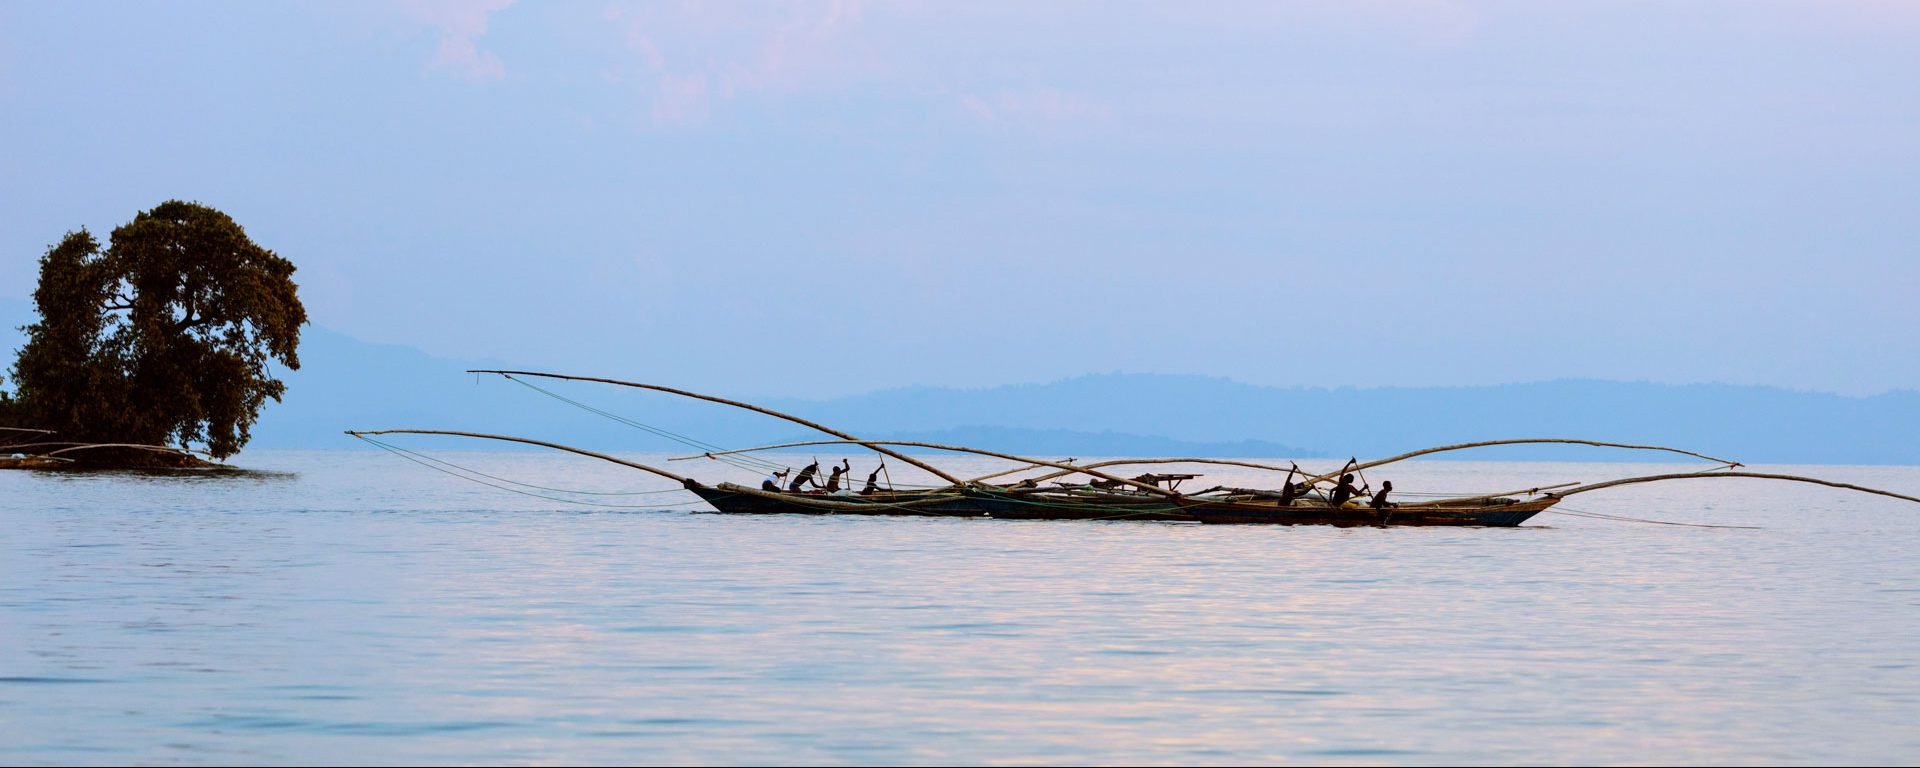 Boats on Lake Kivu on the border of the Democratic Republic of Congo and Rwanda